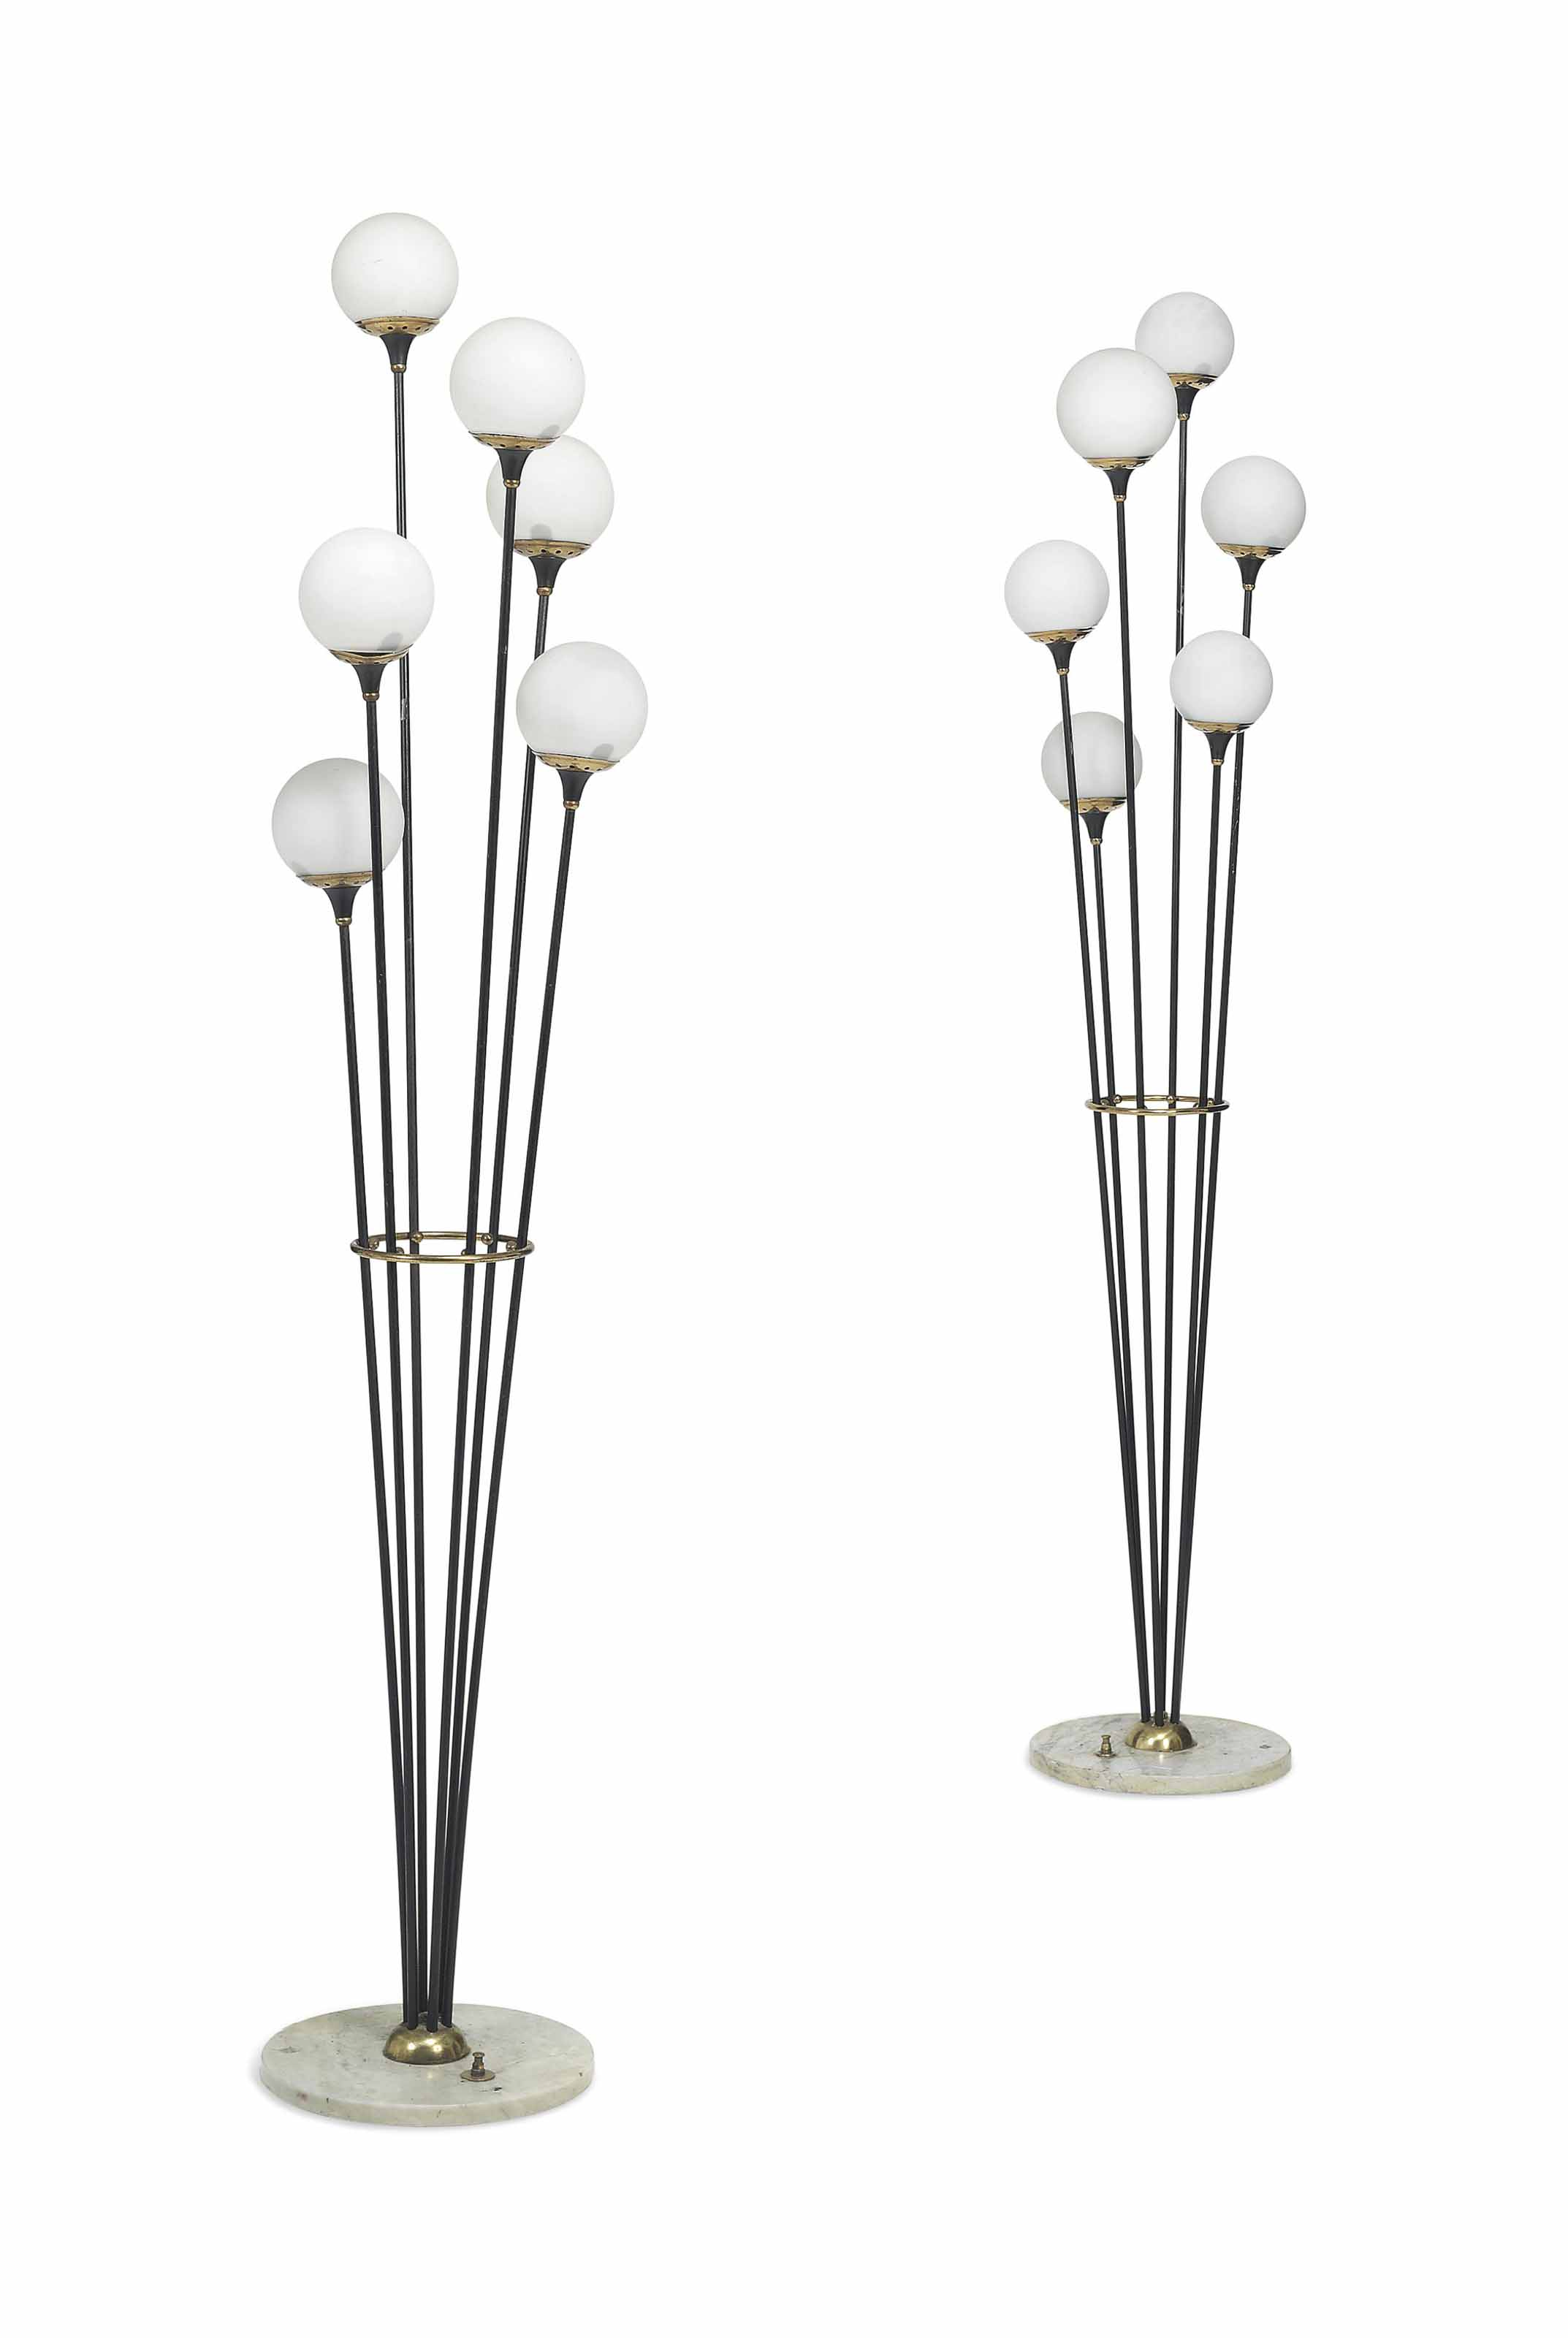 A PAIR OF STILNOVO FLOOR LAMPS